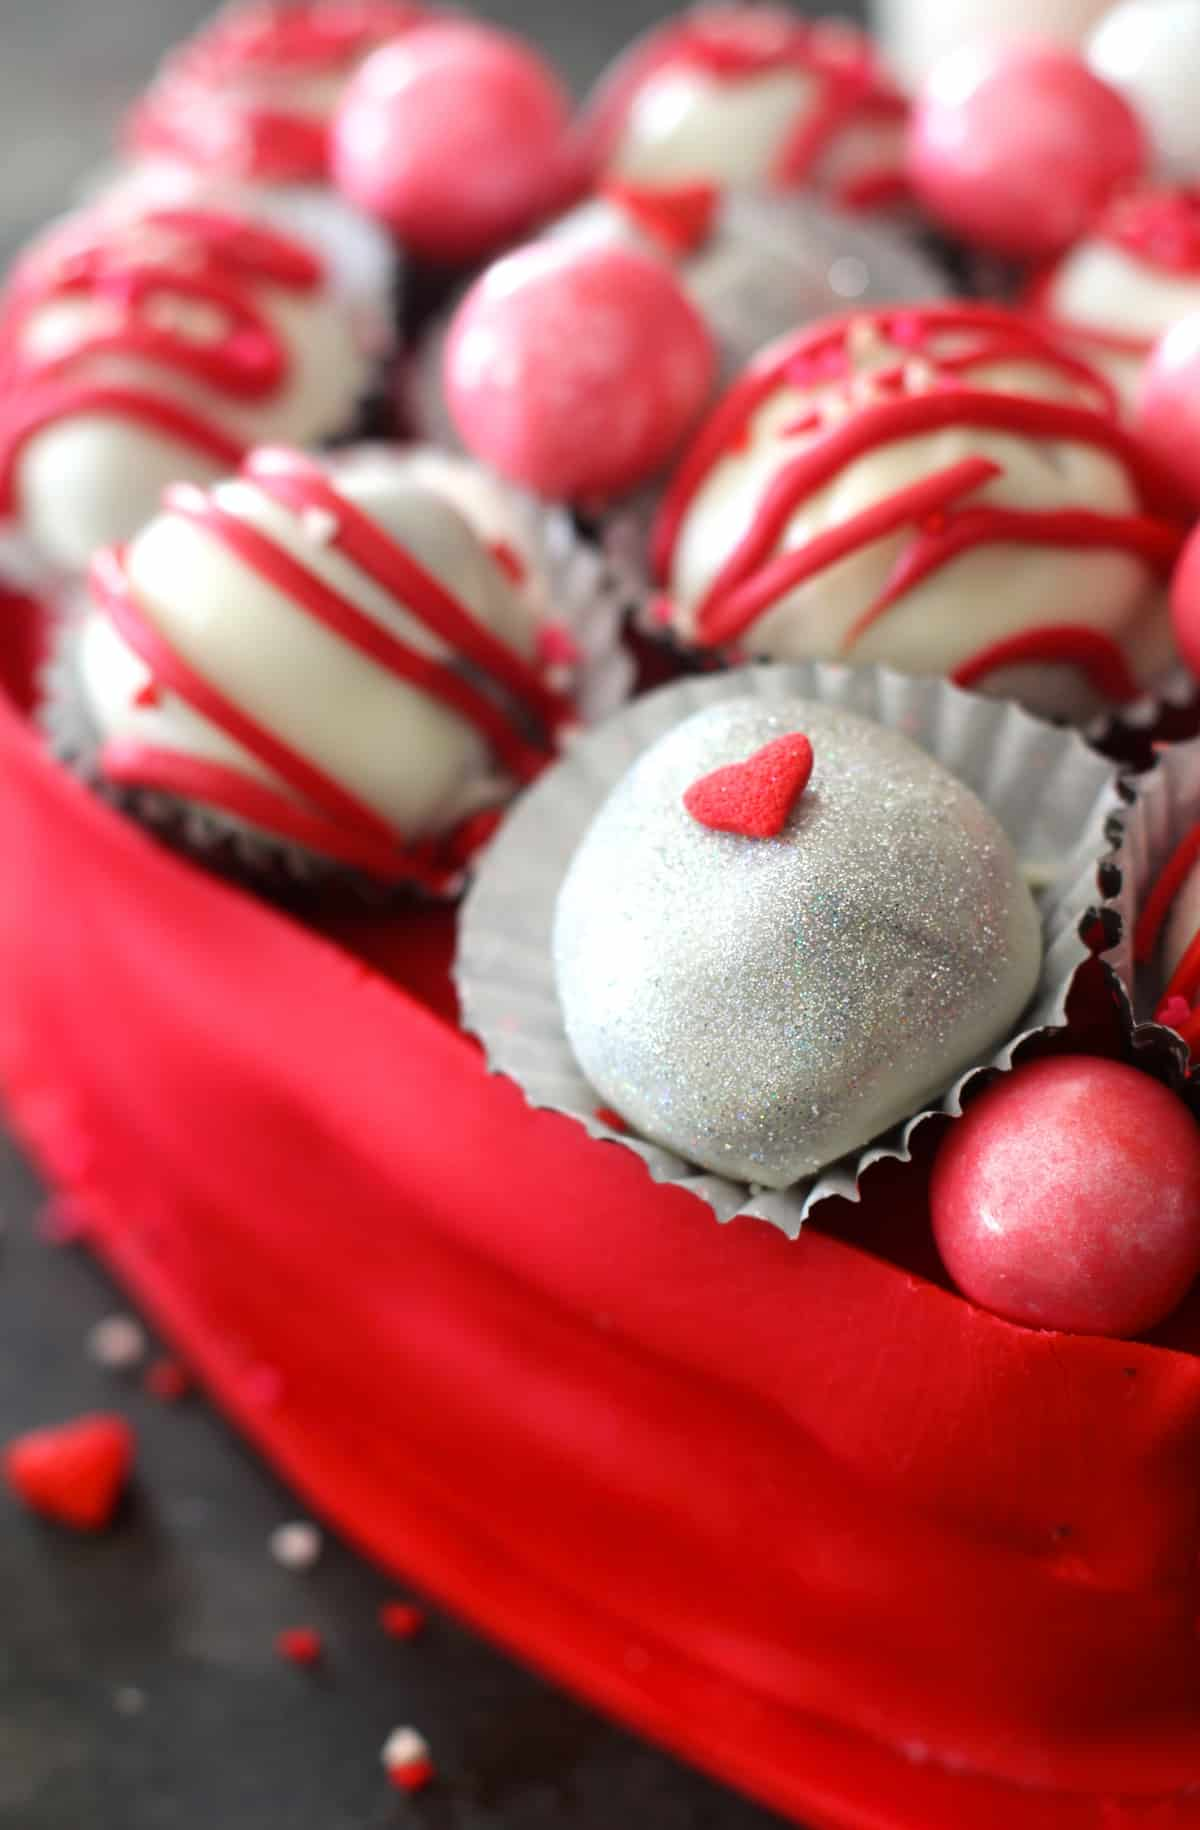 Easy homemade truffles that are decadent with a hint of almond extract